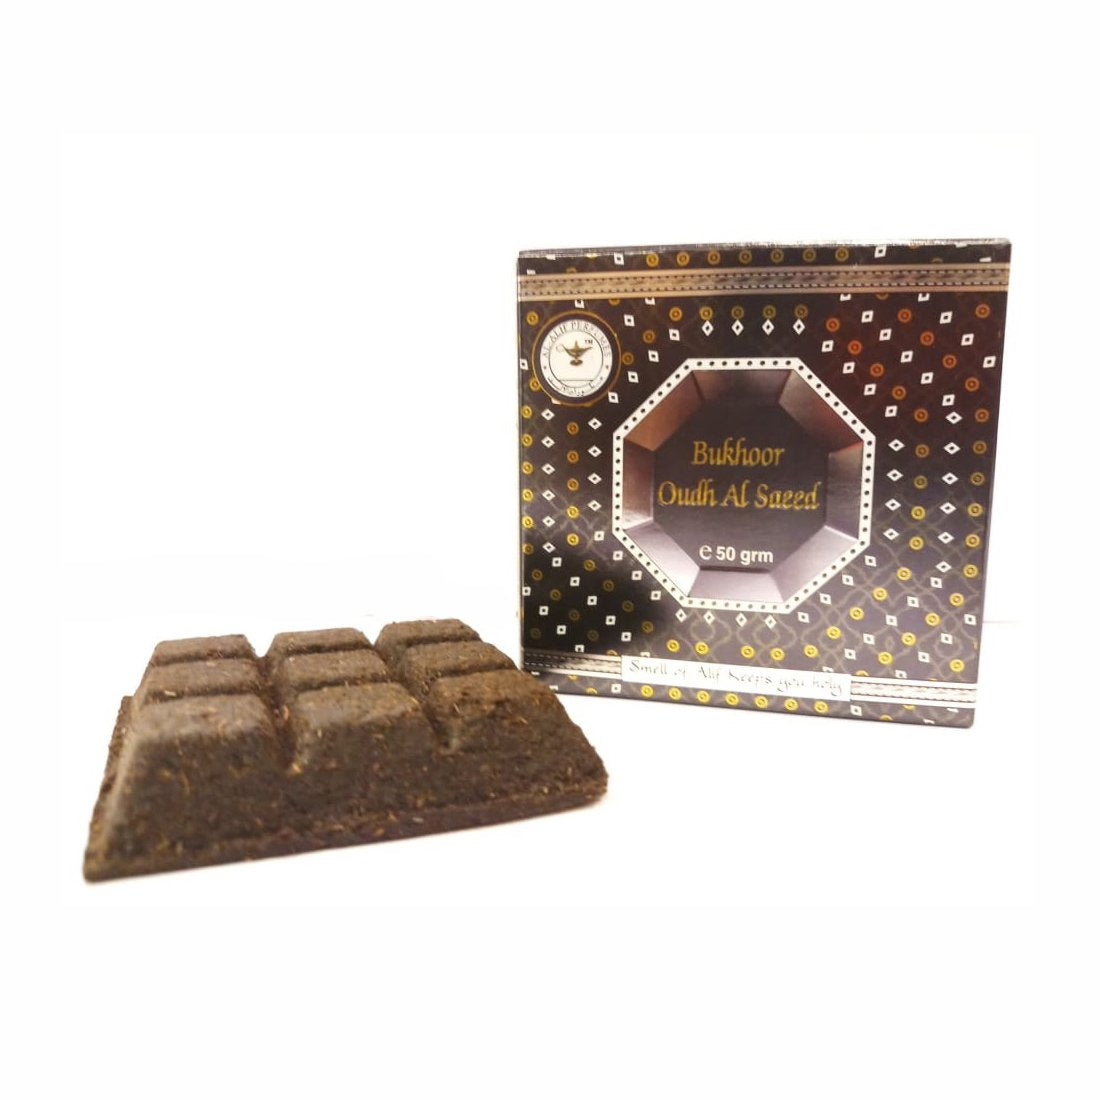 Alif Bukhoor Oudh Al Firdous & Al Saeed Incense Home Fragrance Combo Pack Of 2 x 50g